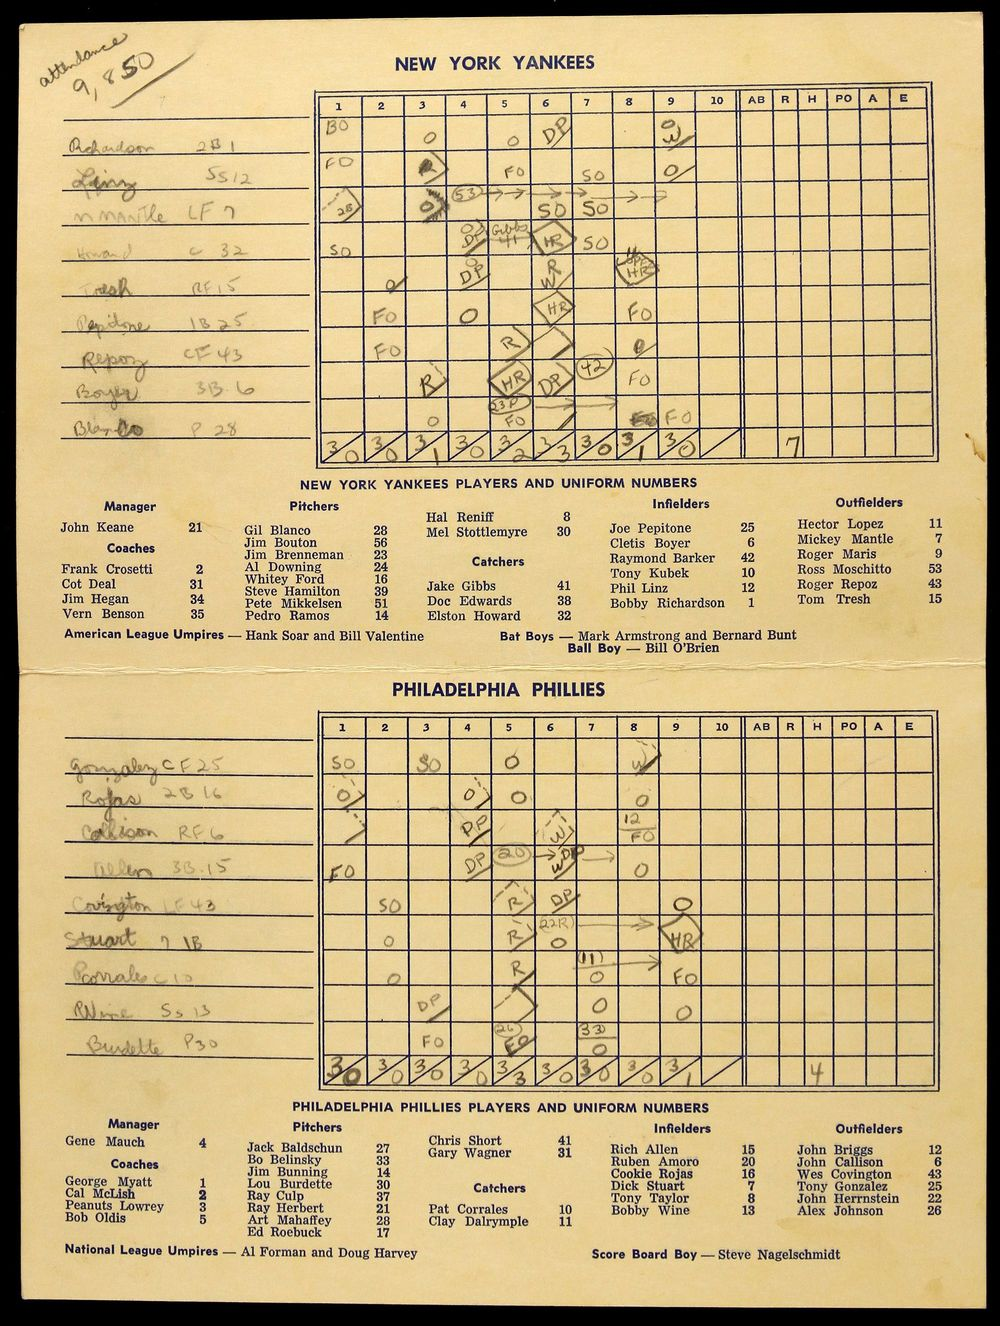 1965 Hall of Fame Game Scorecard